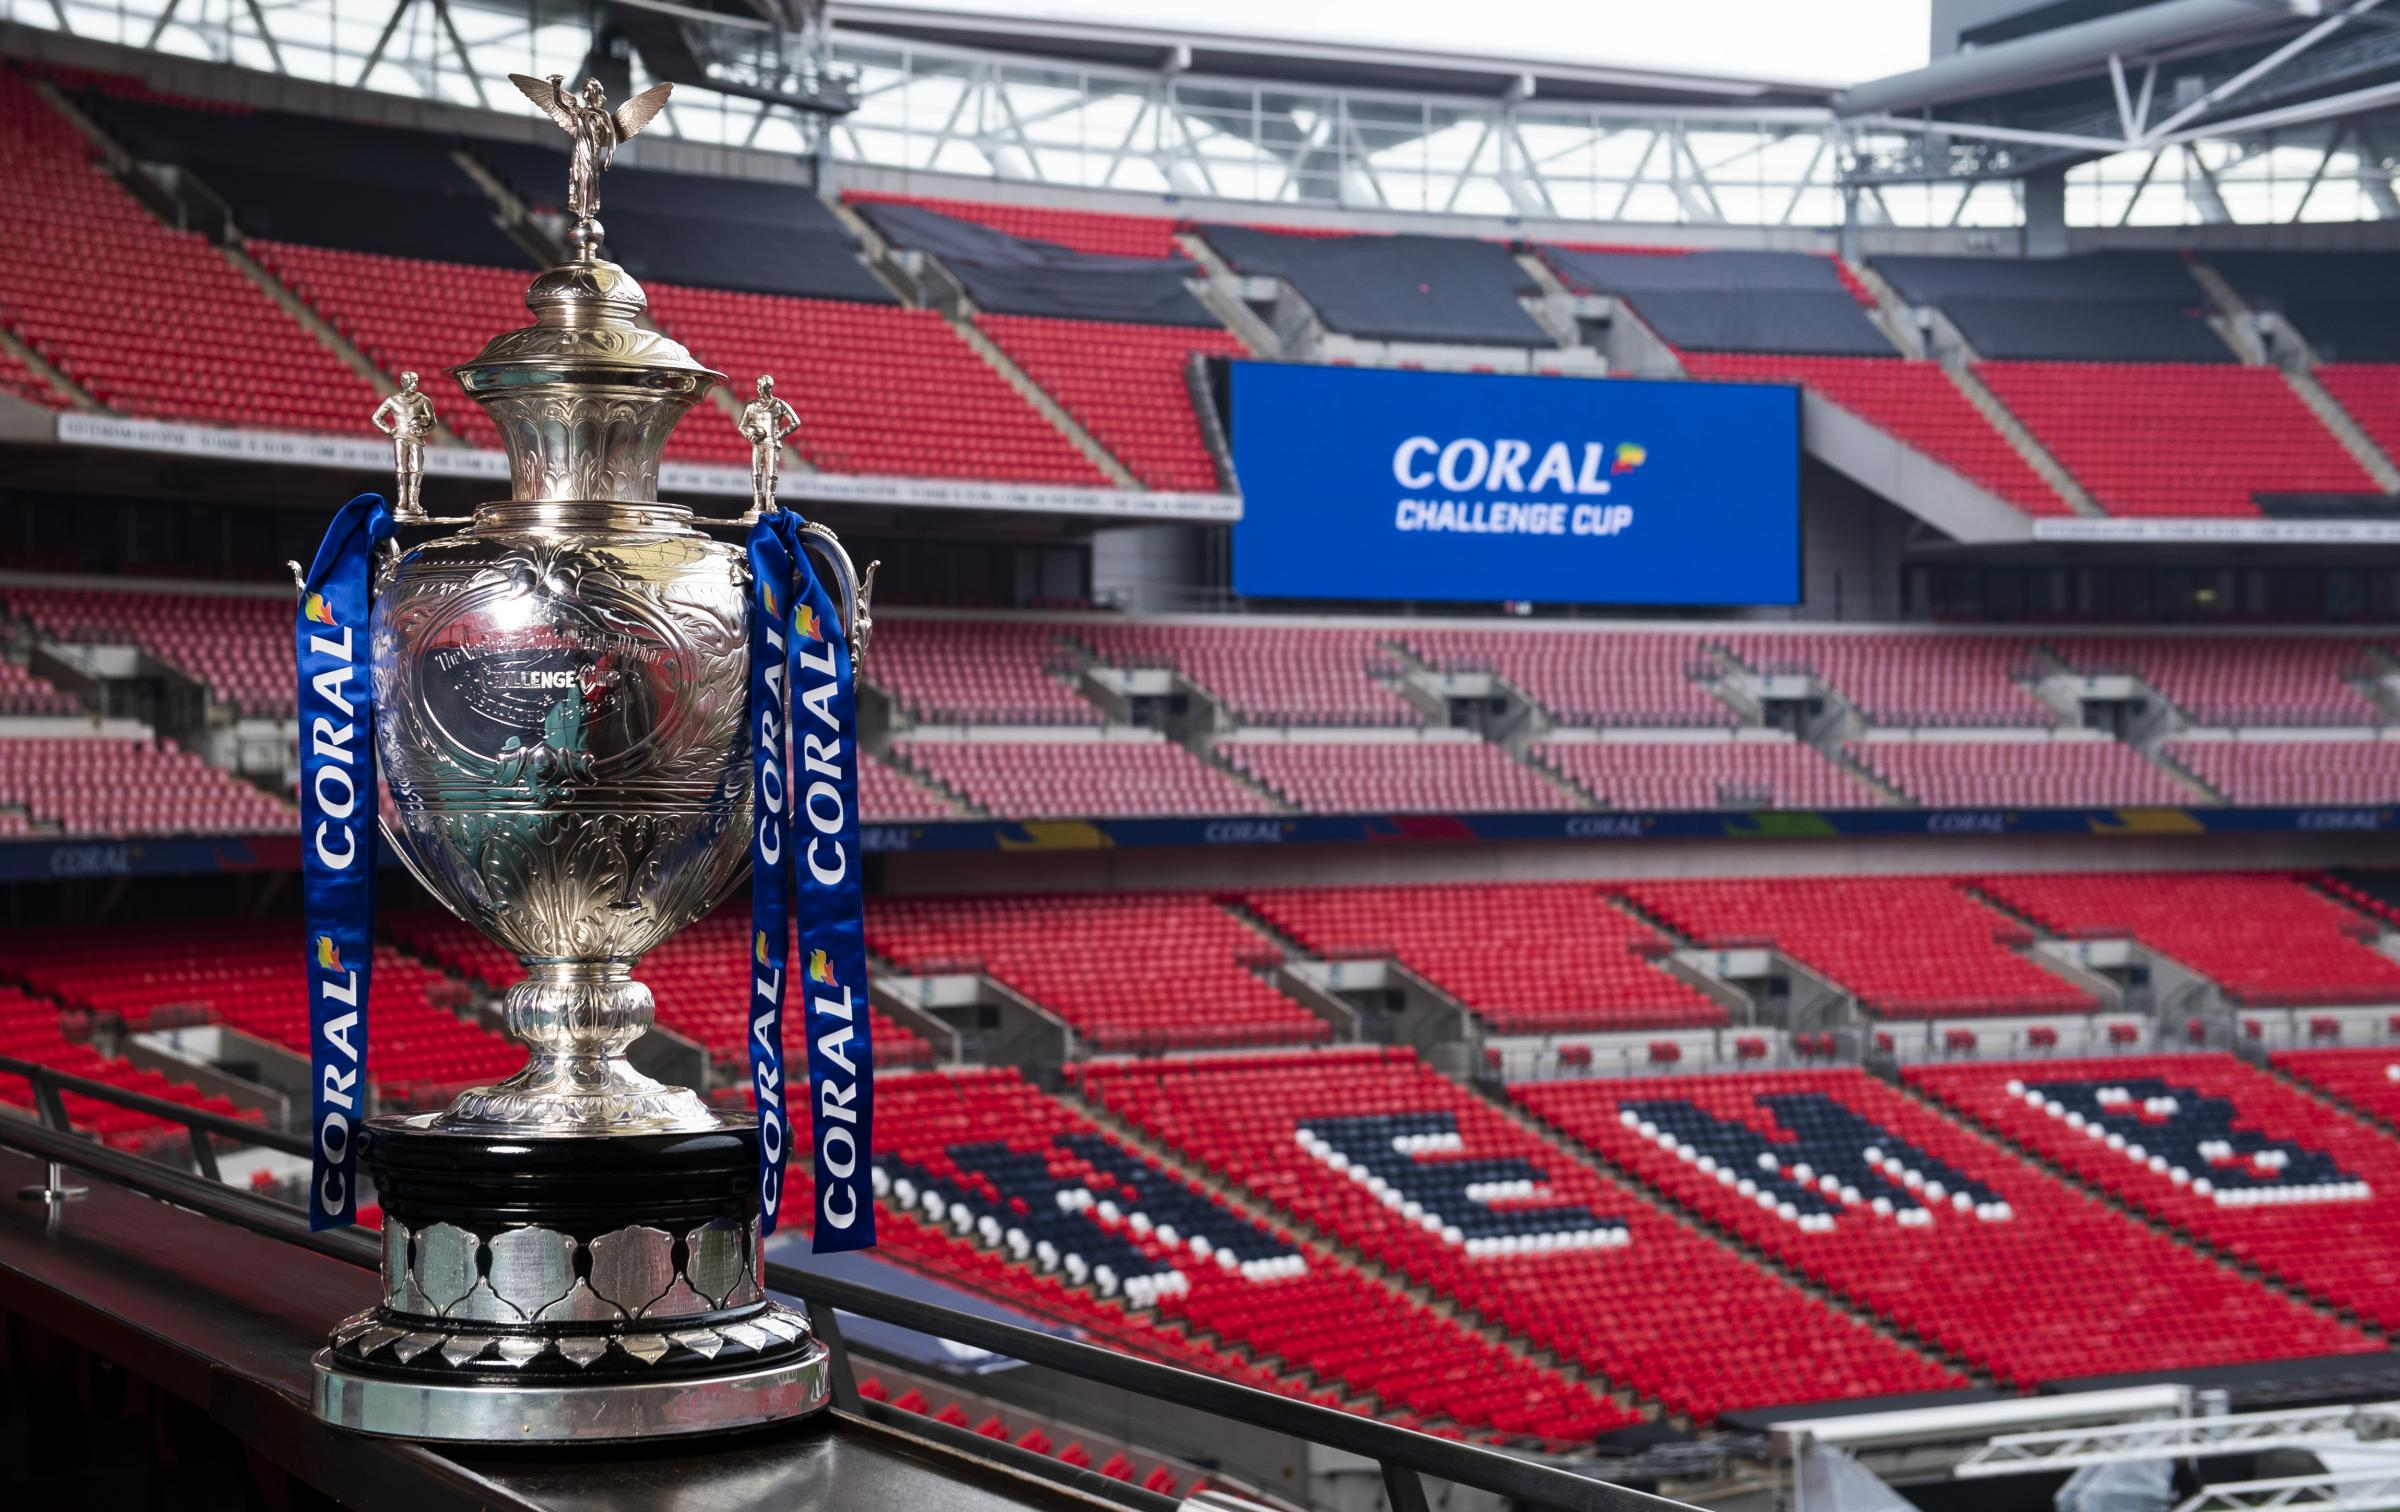 The date of the Challenge Cup final of 2020 has been confirmed